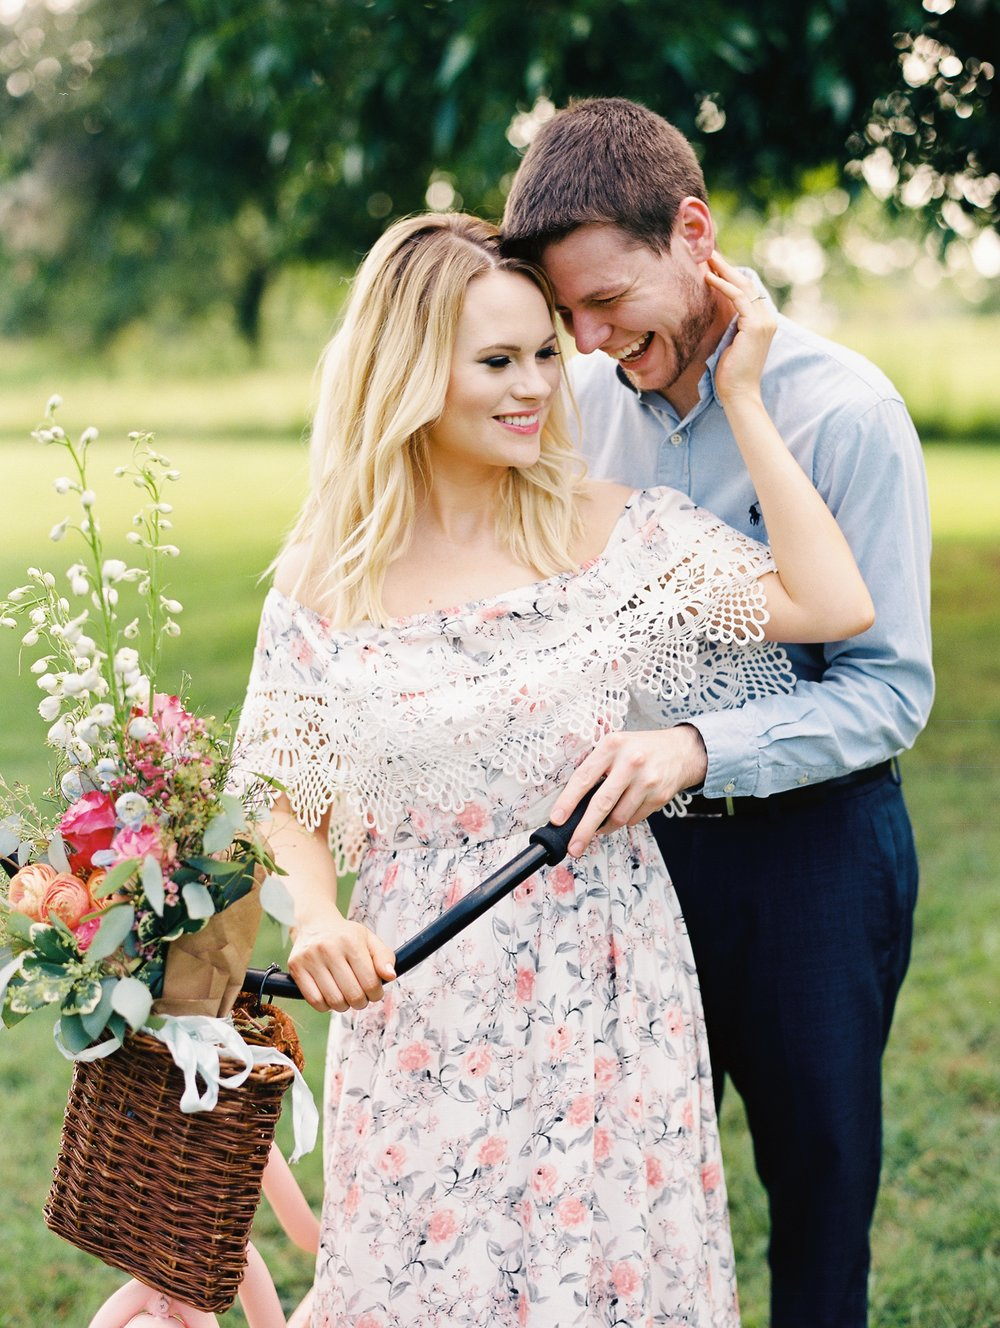 Peach-Orchard-Engagement-Session-Arkansas_0026.jpg